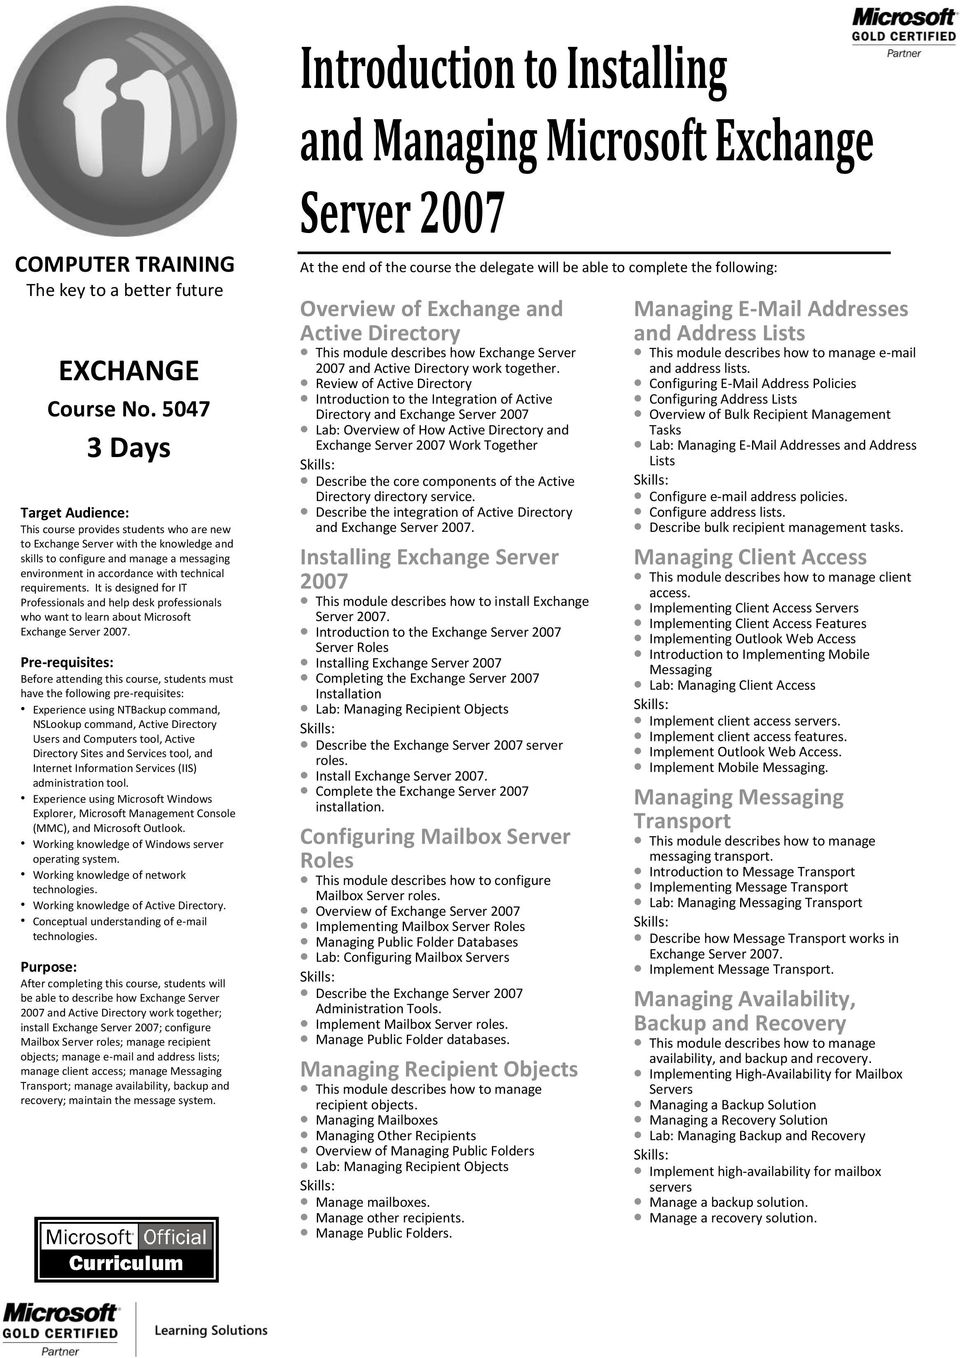 requirements. It is designed for IT Professionals and help desk professionals who want to learn about Microsoft Exchange Server 2007.